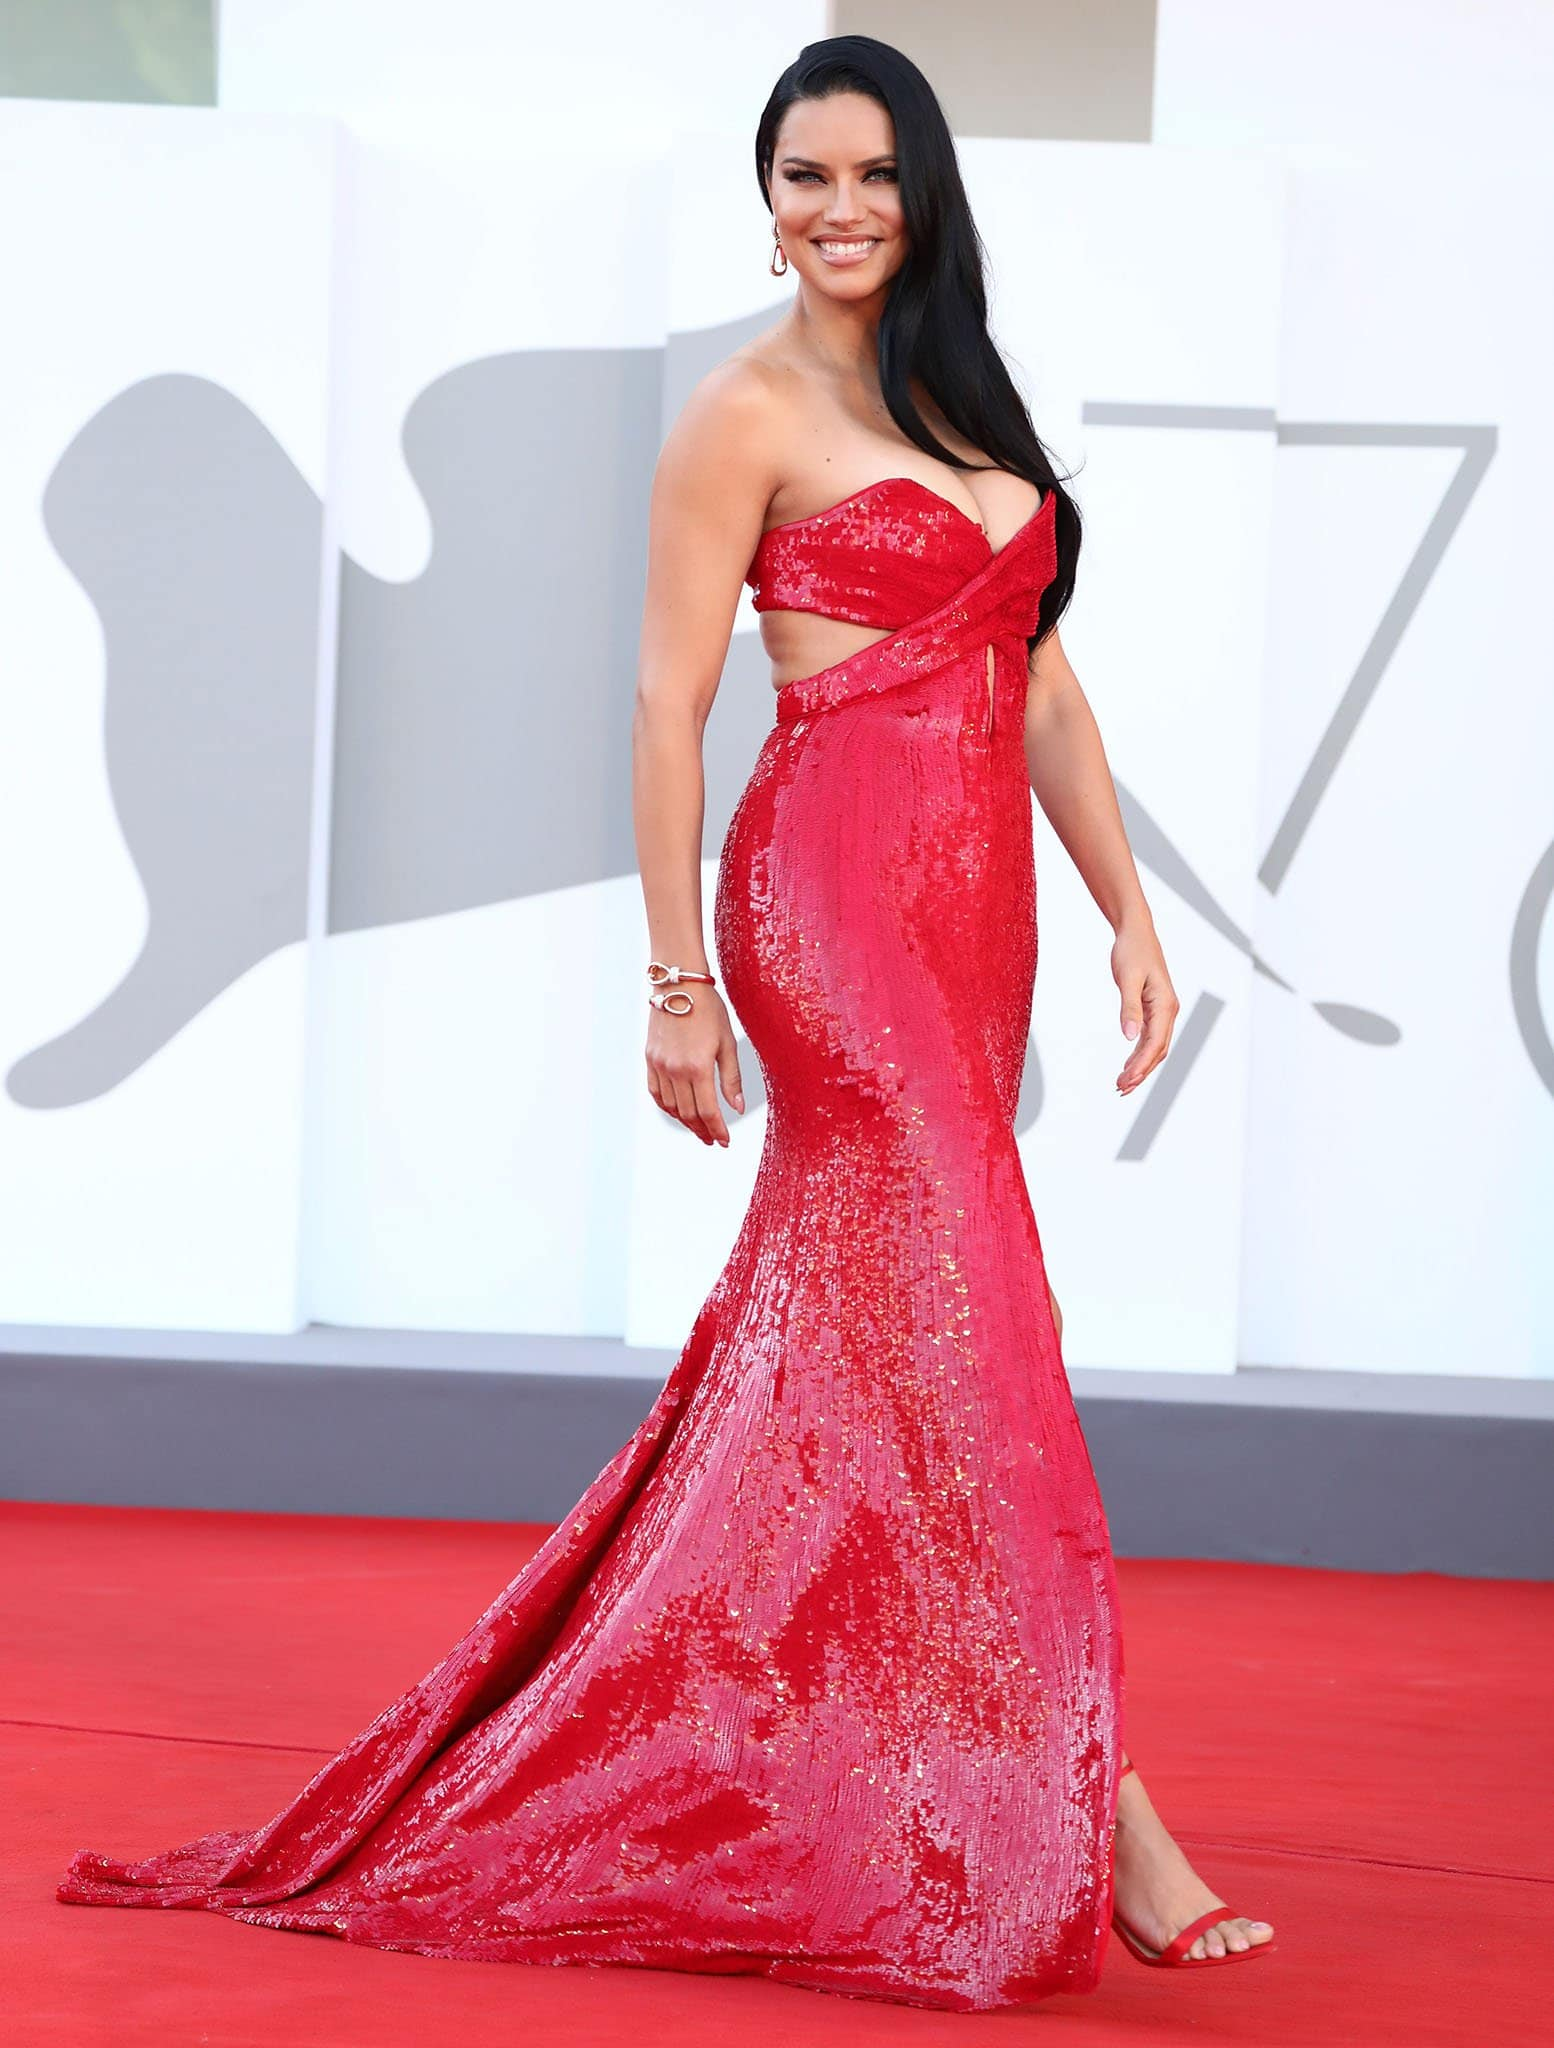 Adriana Lima looks sensational in her red sequined gown from Etro